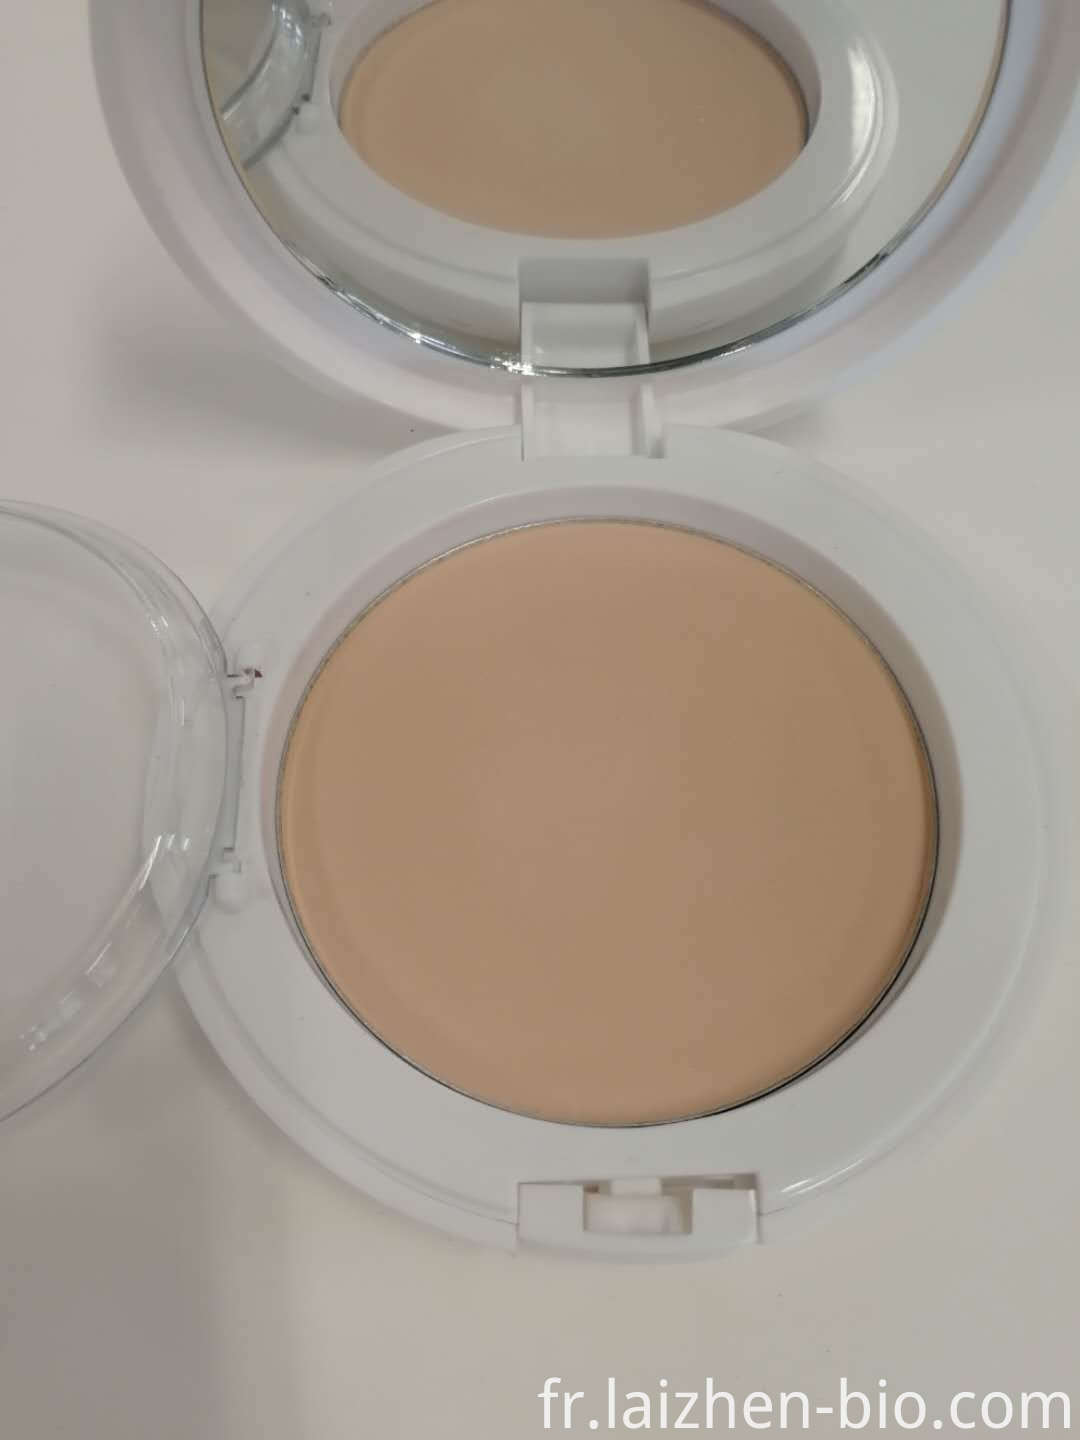 OEM Private Label Pressed Powder Foundation